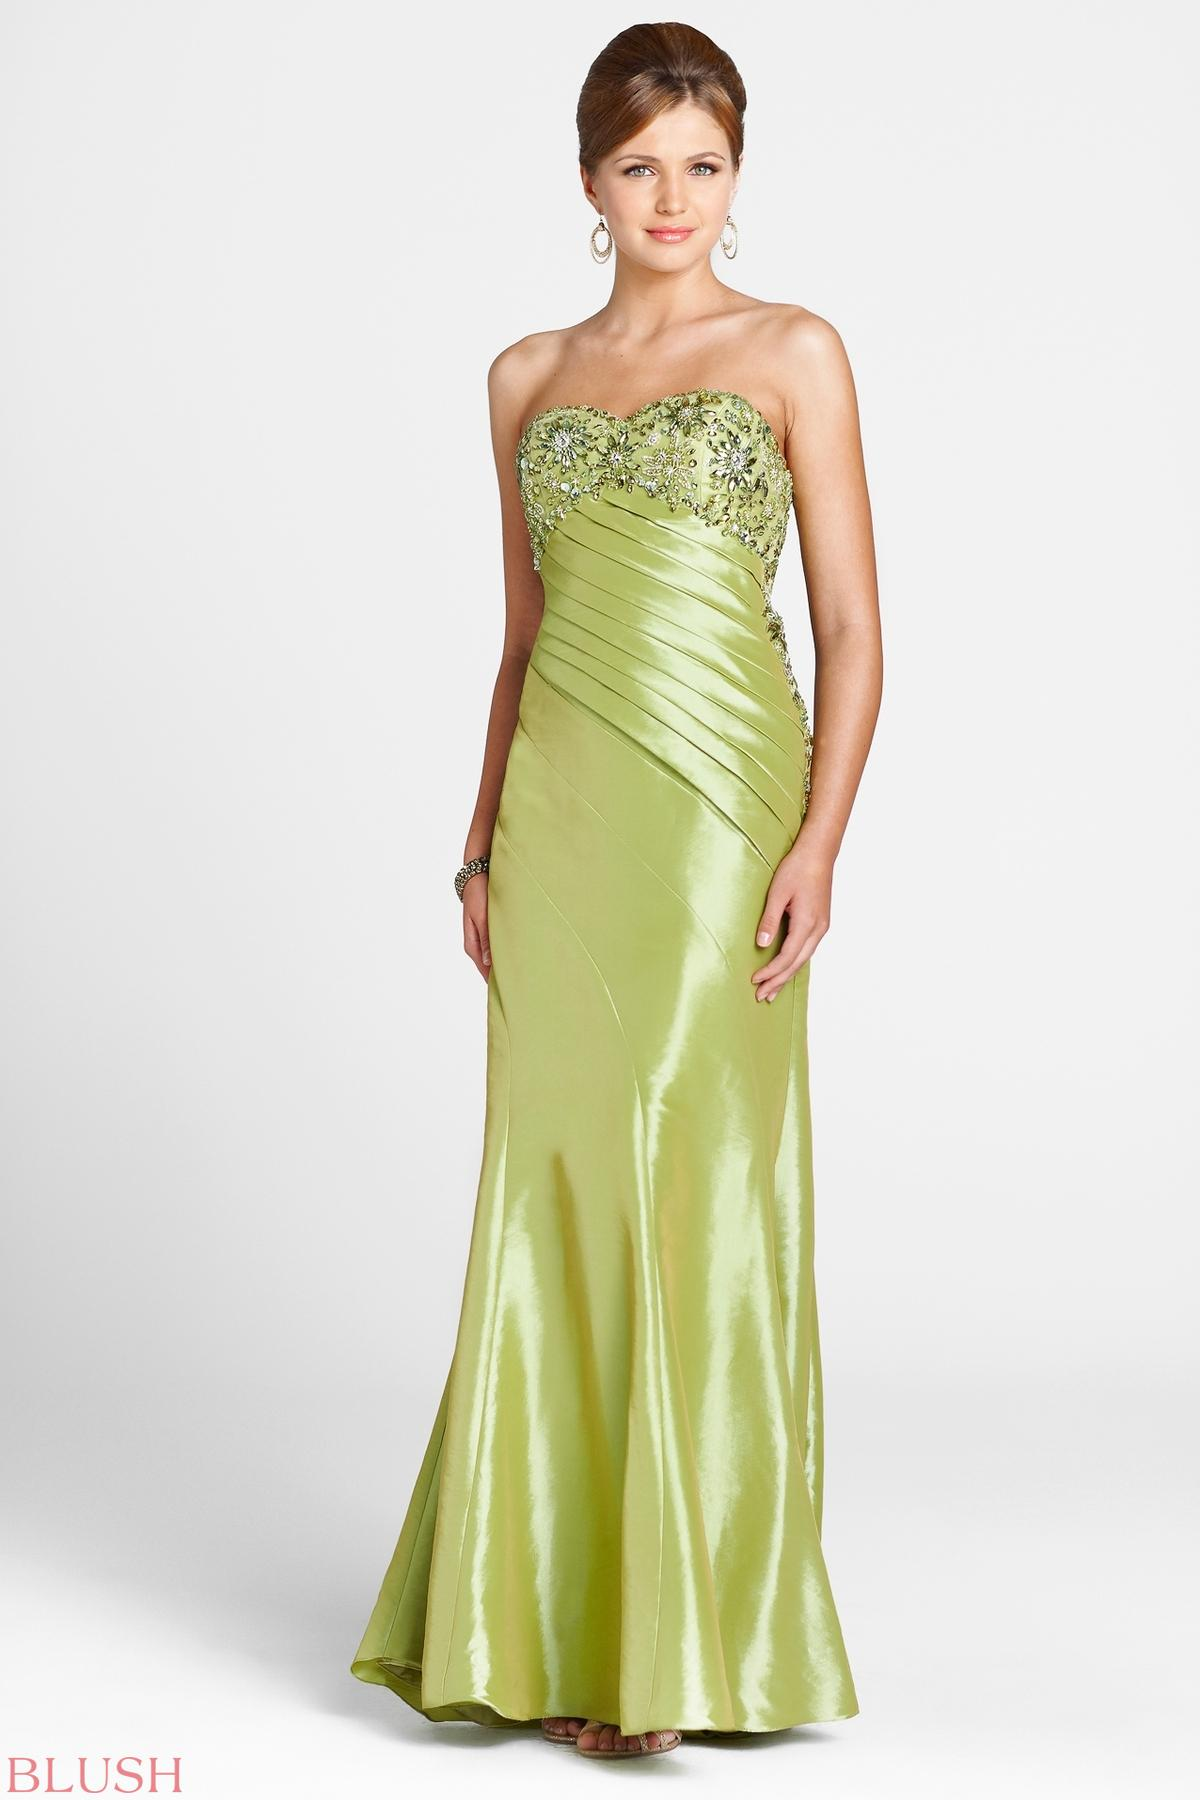 Buy 2014 Beautiful Strapless with Beaded Floor Length Satin Prom Dress for sale Online Cheap Prices